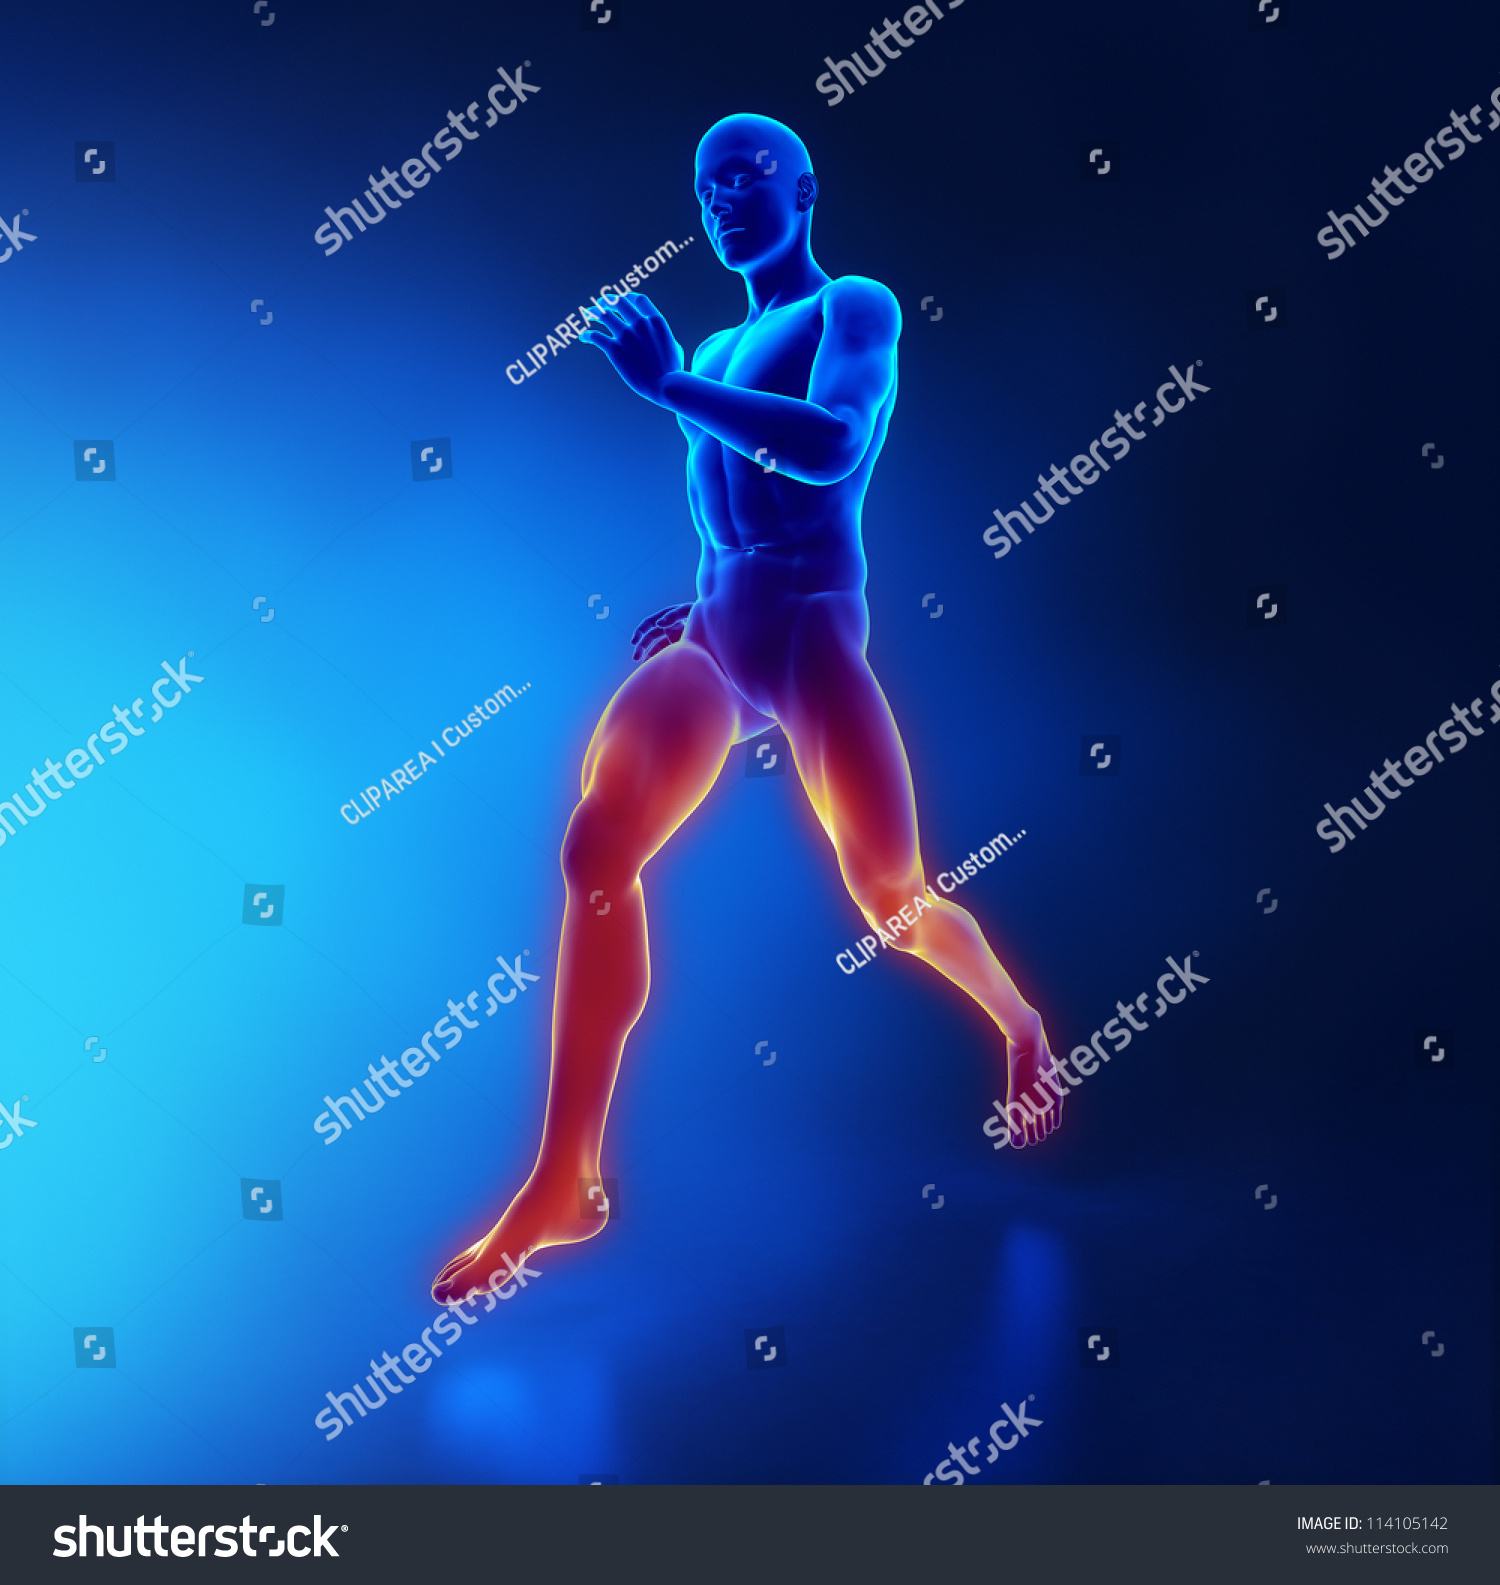 fatigue exhaustion and muscle weakness concept stock photo save to a lightbox